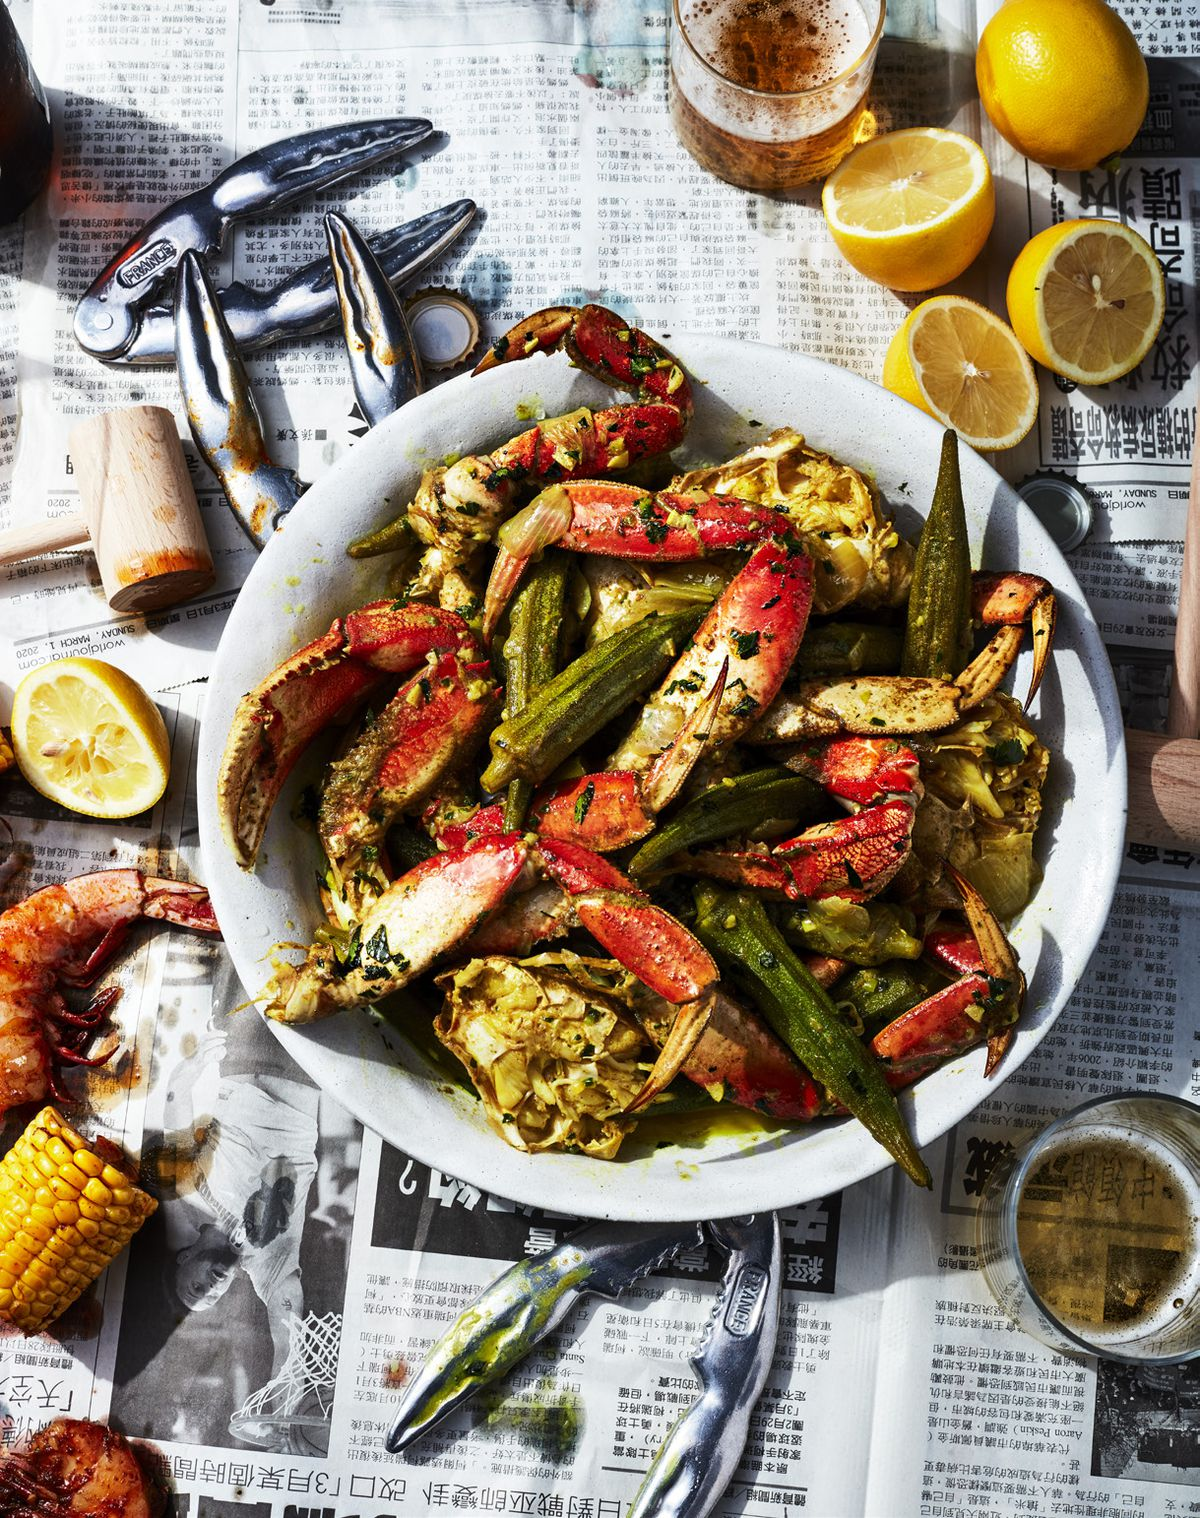 Crab bag from Ayesha Curry cookbook